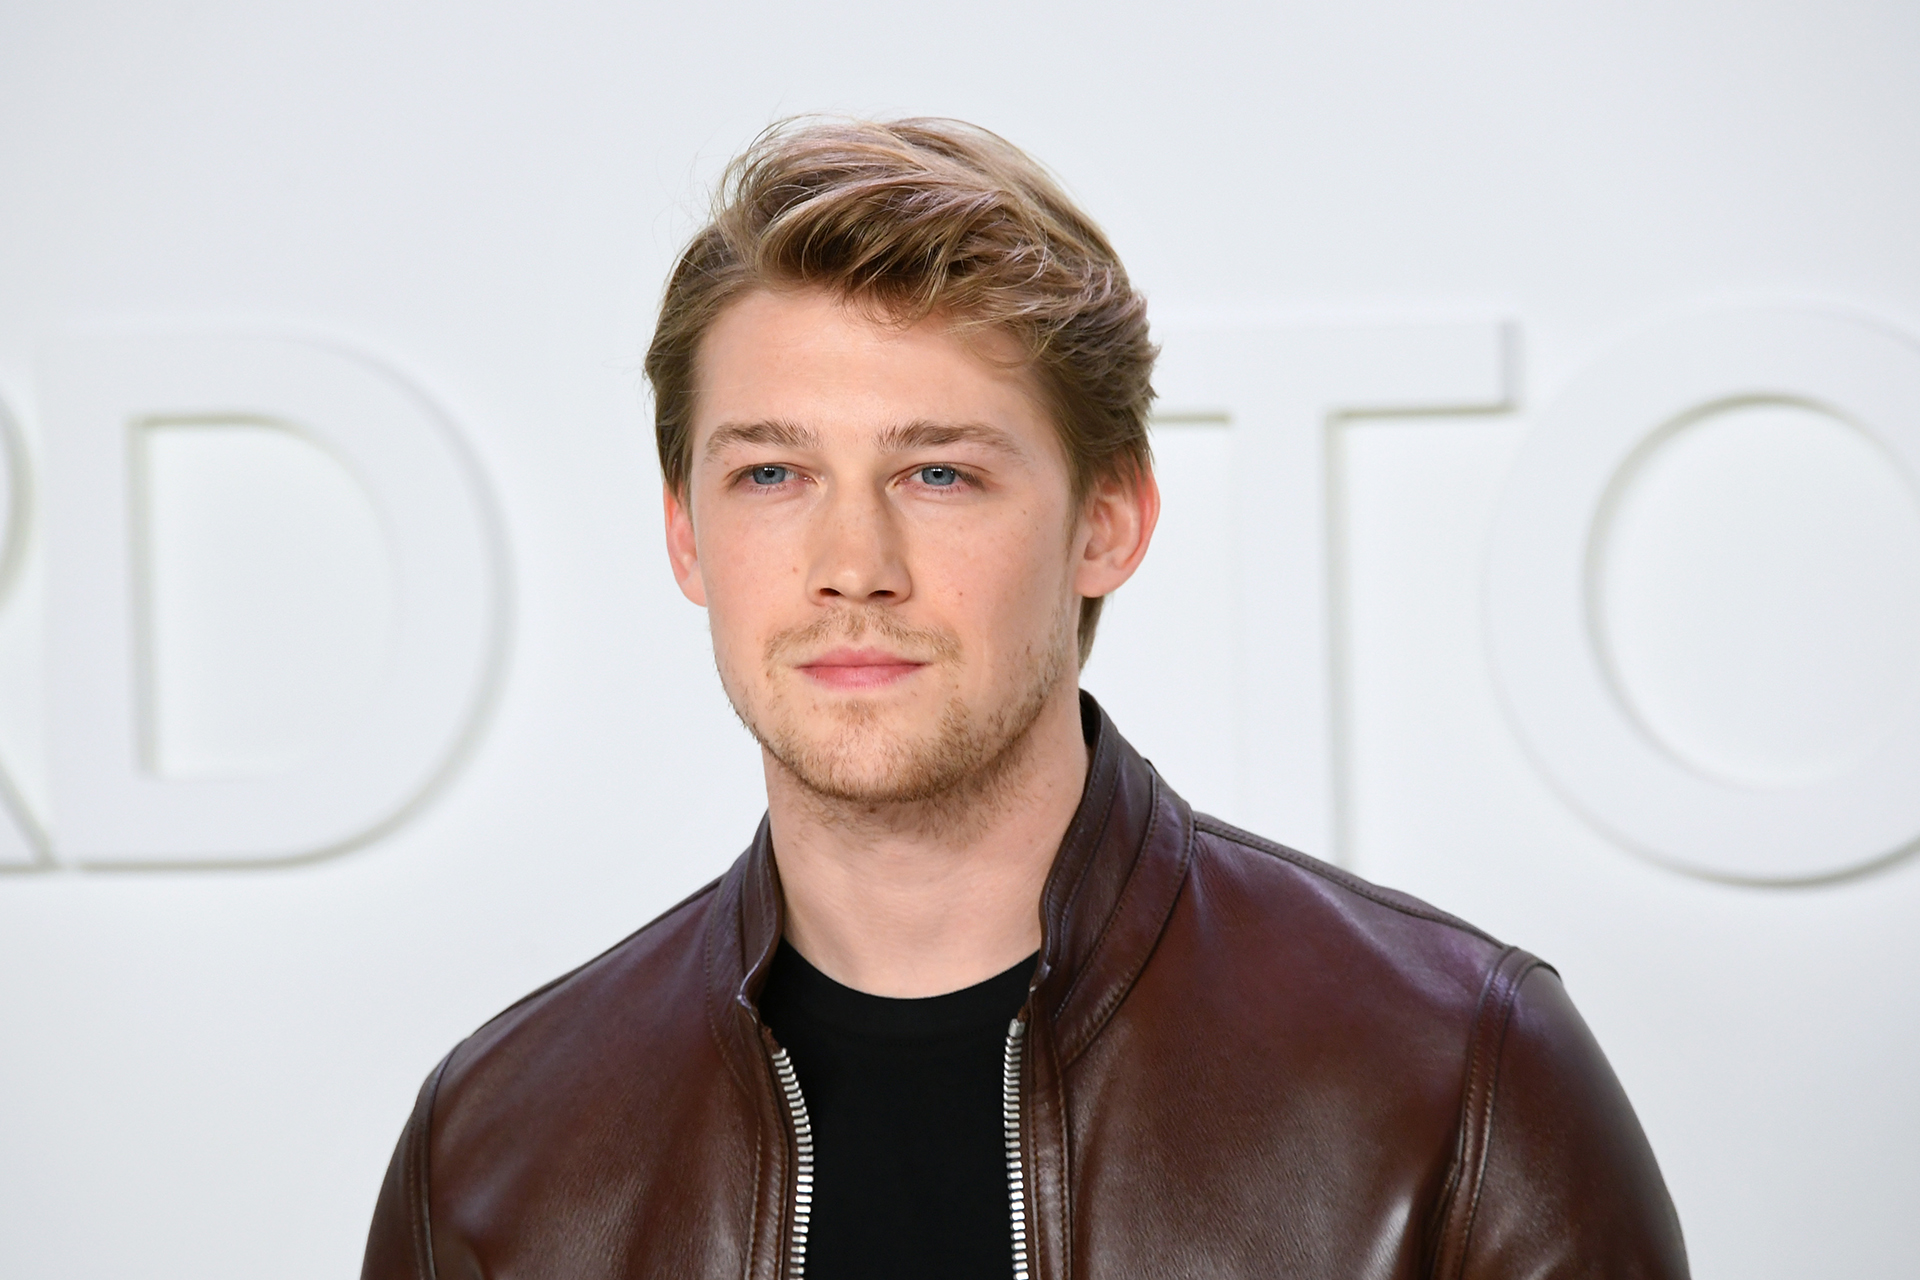 People Now: Wine, Sketches and Taylor Swift's Cat: How Joe Alwyn Is Passing Time Amid Self-Isolation - Watch the Full Episode